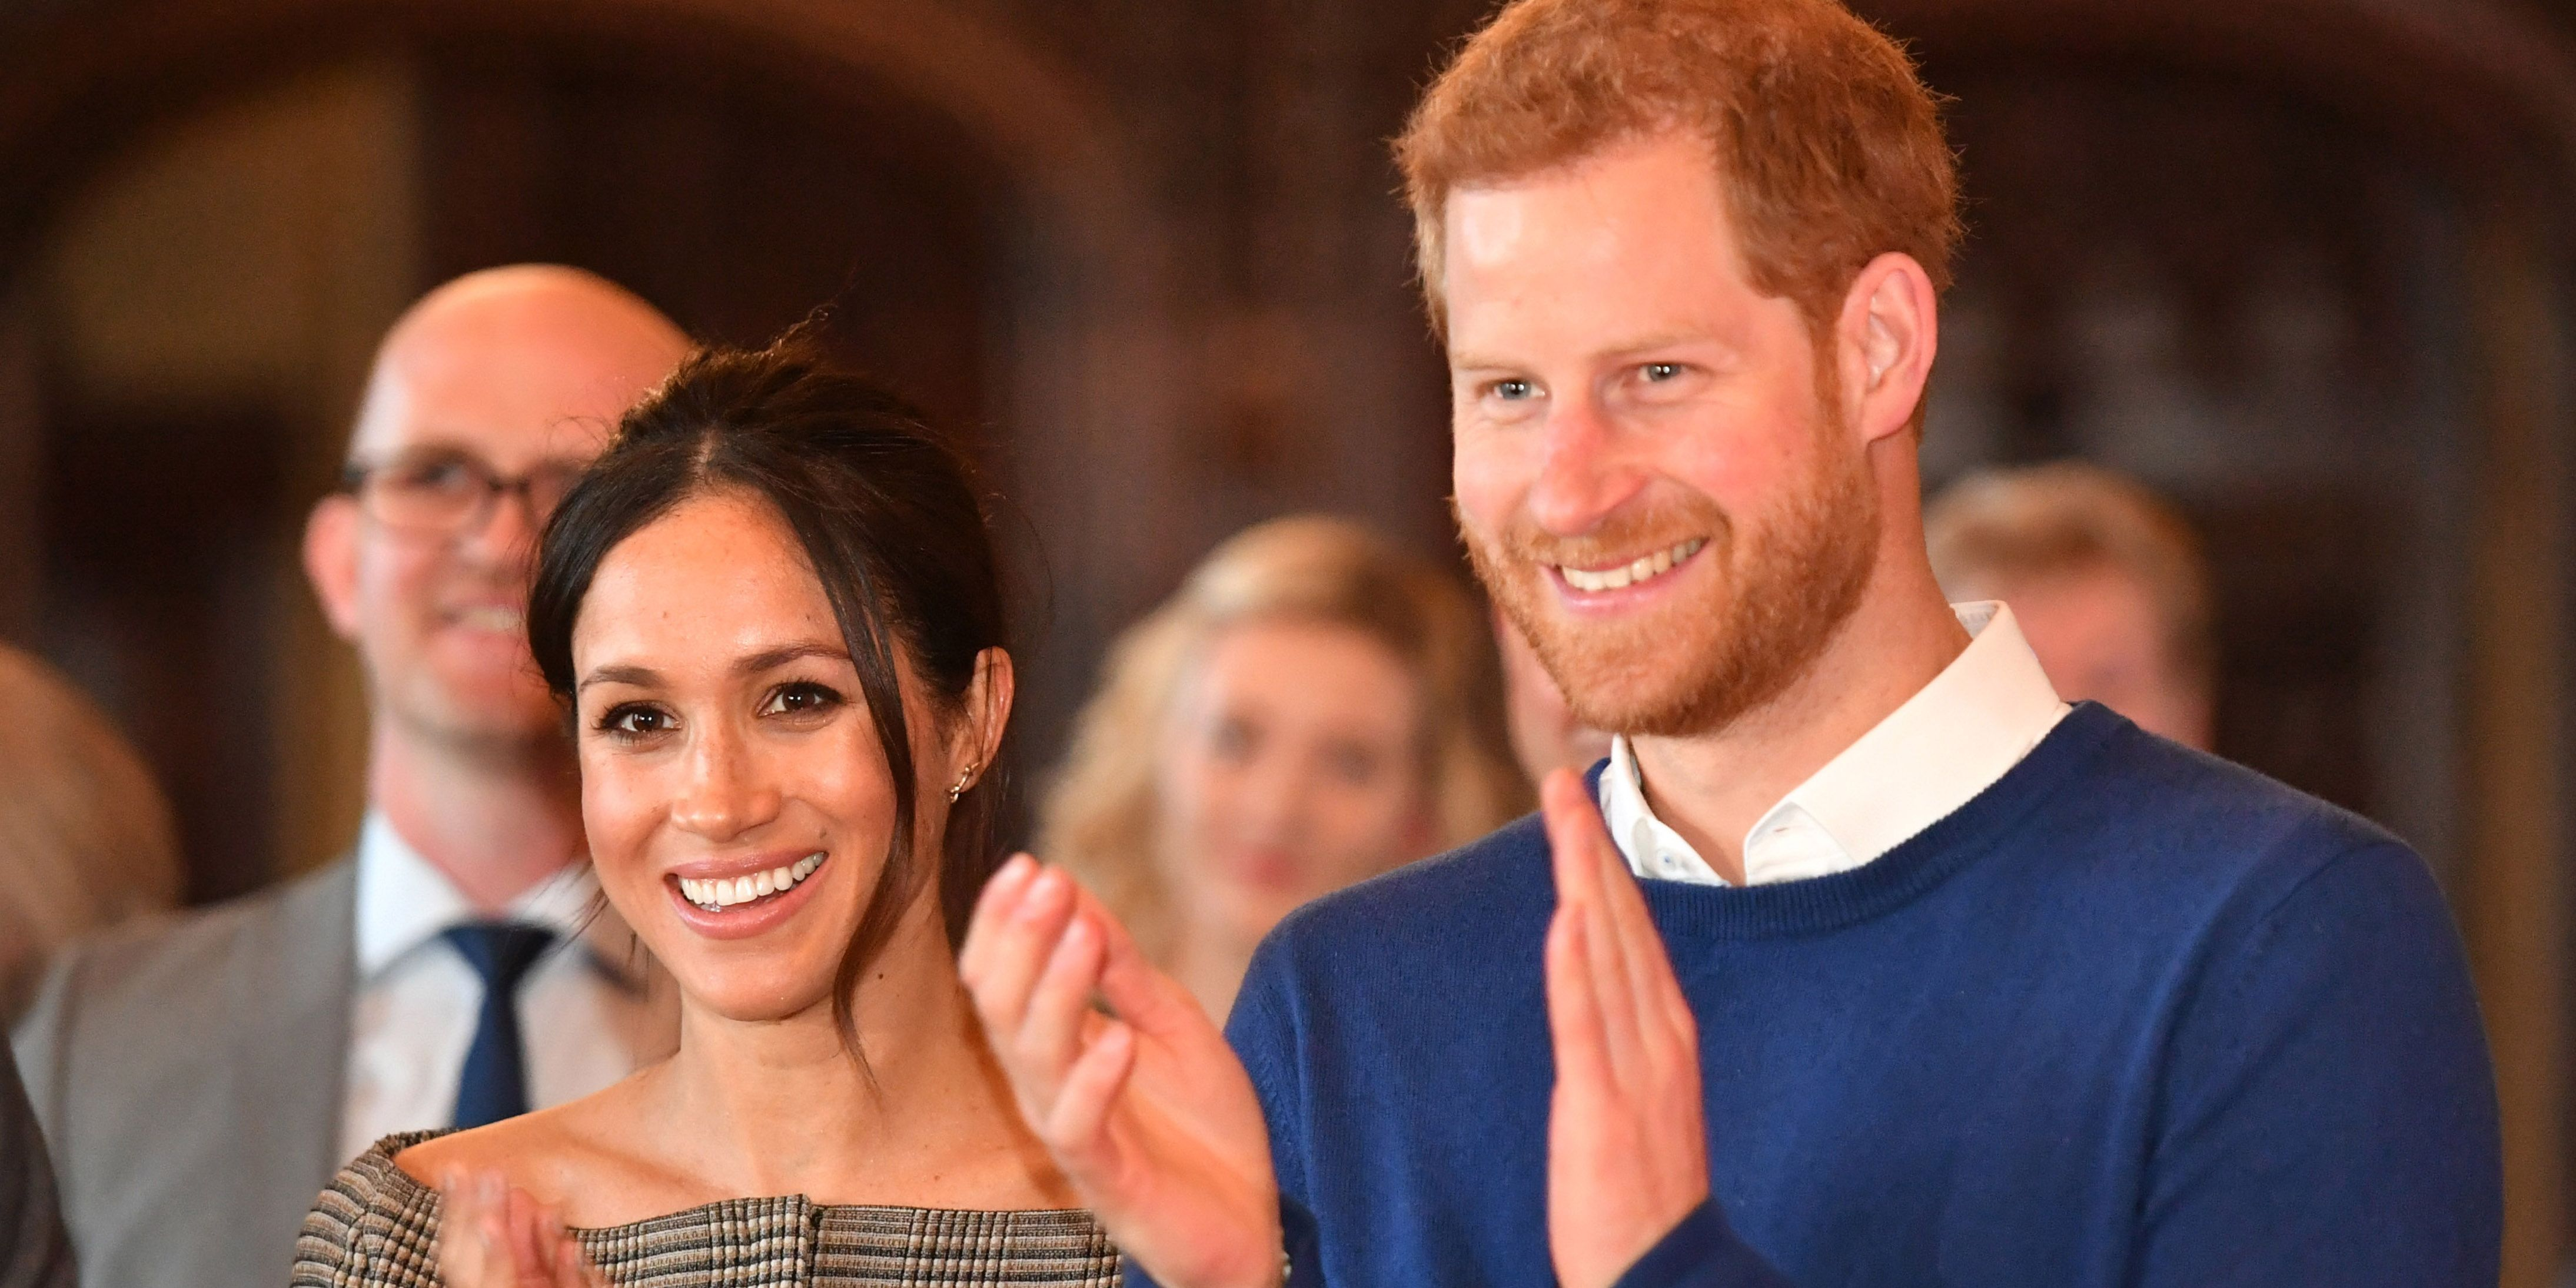 prince harry and meghan markle are on time s 100 most influential people list before may 19 royal wedding prince harry and meghan markle wedding prince harry and meghan markle wedding